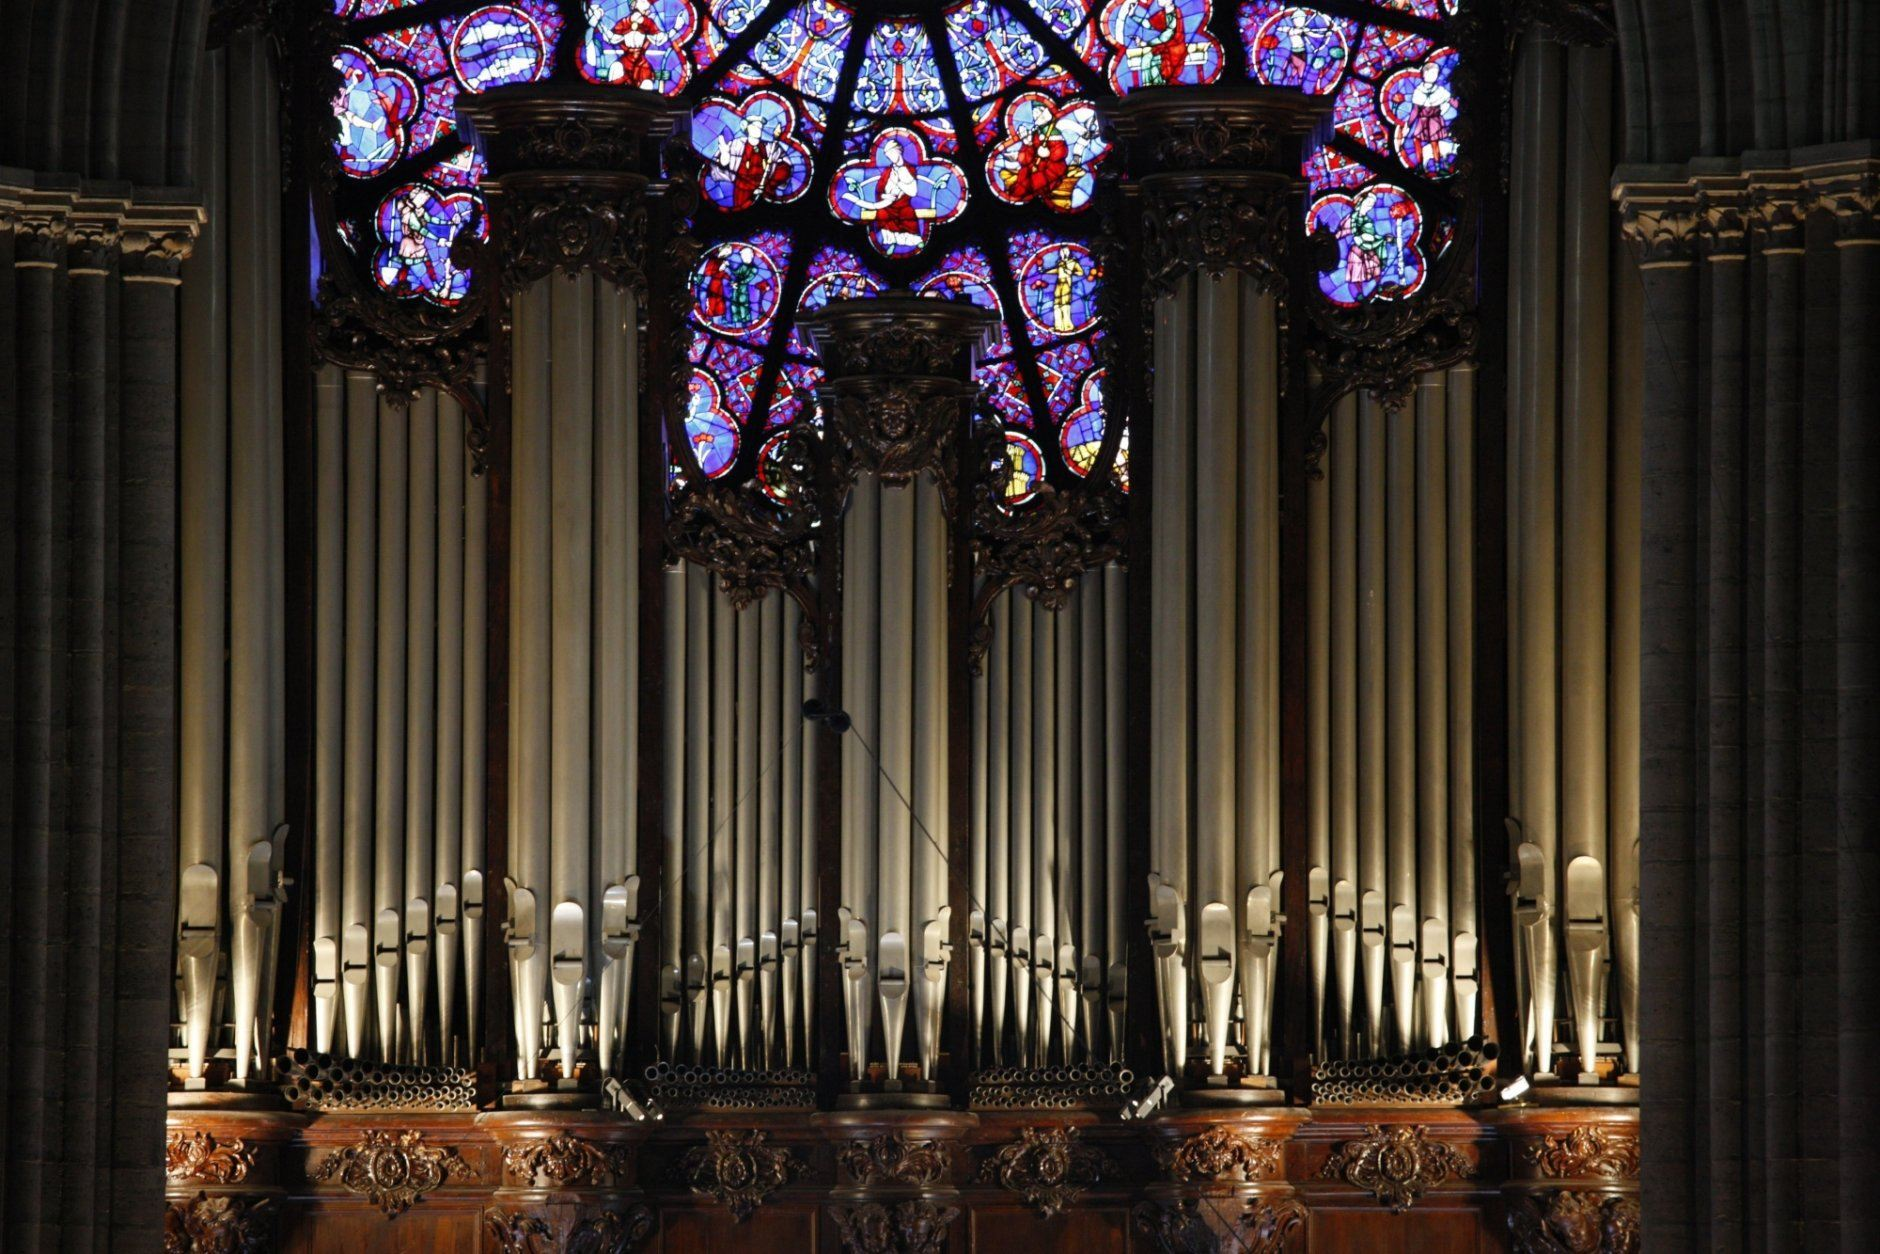 The master organ is used for public services. (Getty Images)